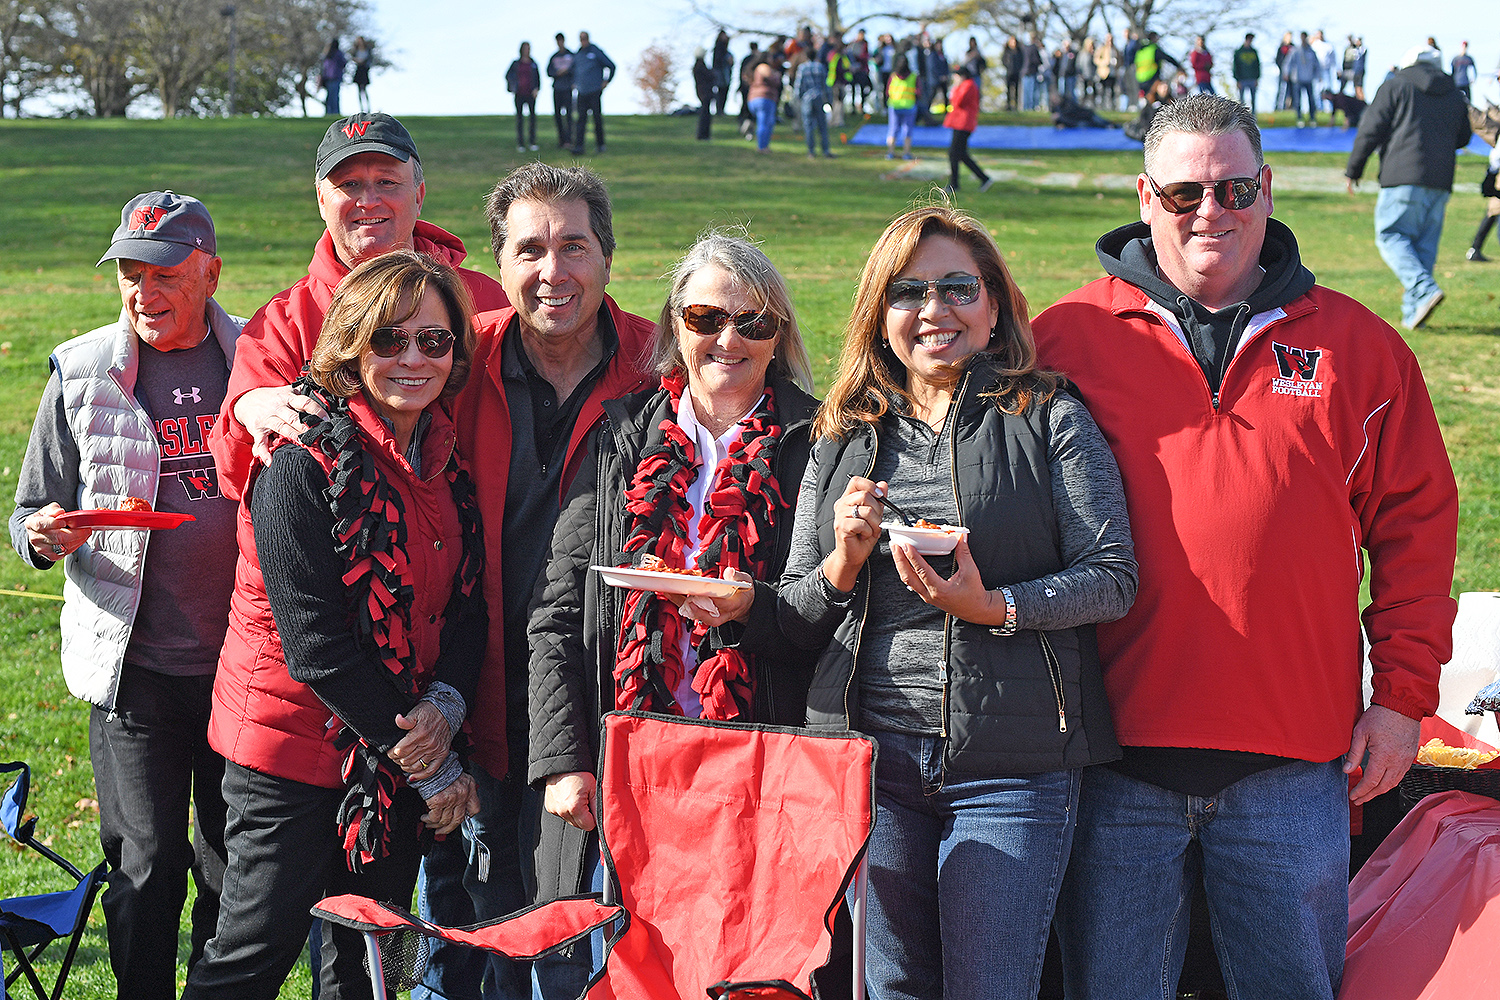 Hundreds of Wesleyan alumni and families participated in the traditional Homecoming/Family Weekend Tailgating event on Andrus Field.